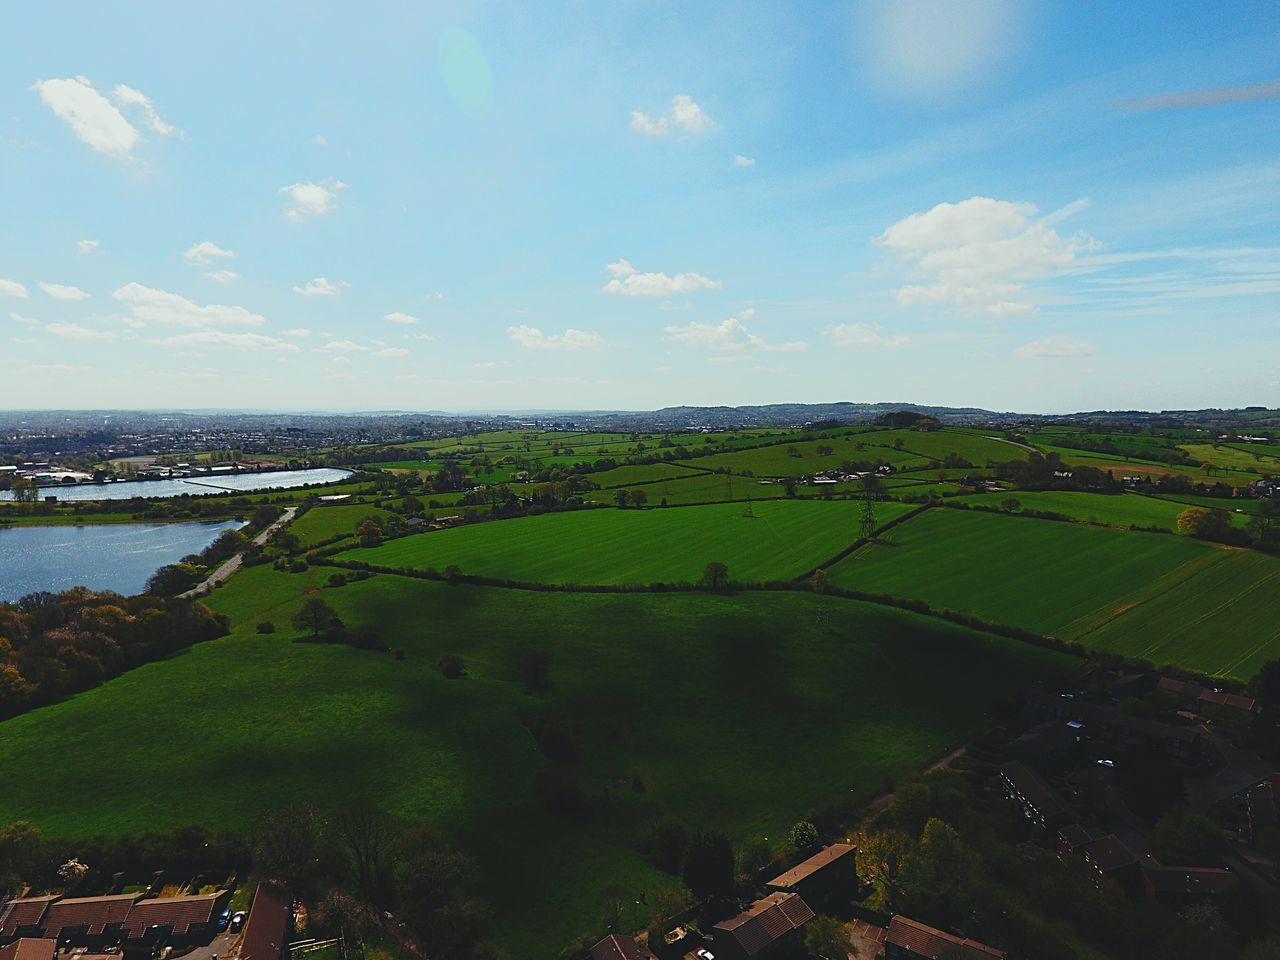 Aerial View Beauty In Nature Blue Cloud Cloud - Sky Day Grass Green Green Color Growth Hill Horizon Over Land Idyllic Landscape Nature No People Outdoors Remote Rural Scene Scenics Sky Tranquil Scene Tranquility Travel Destinations Water